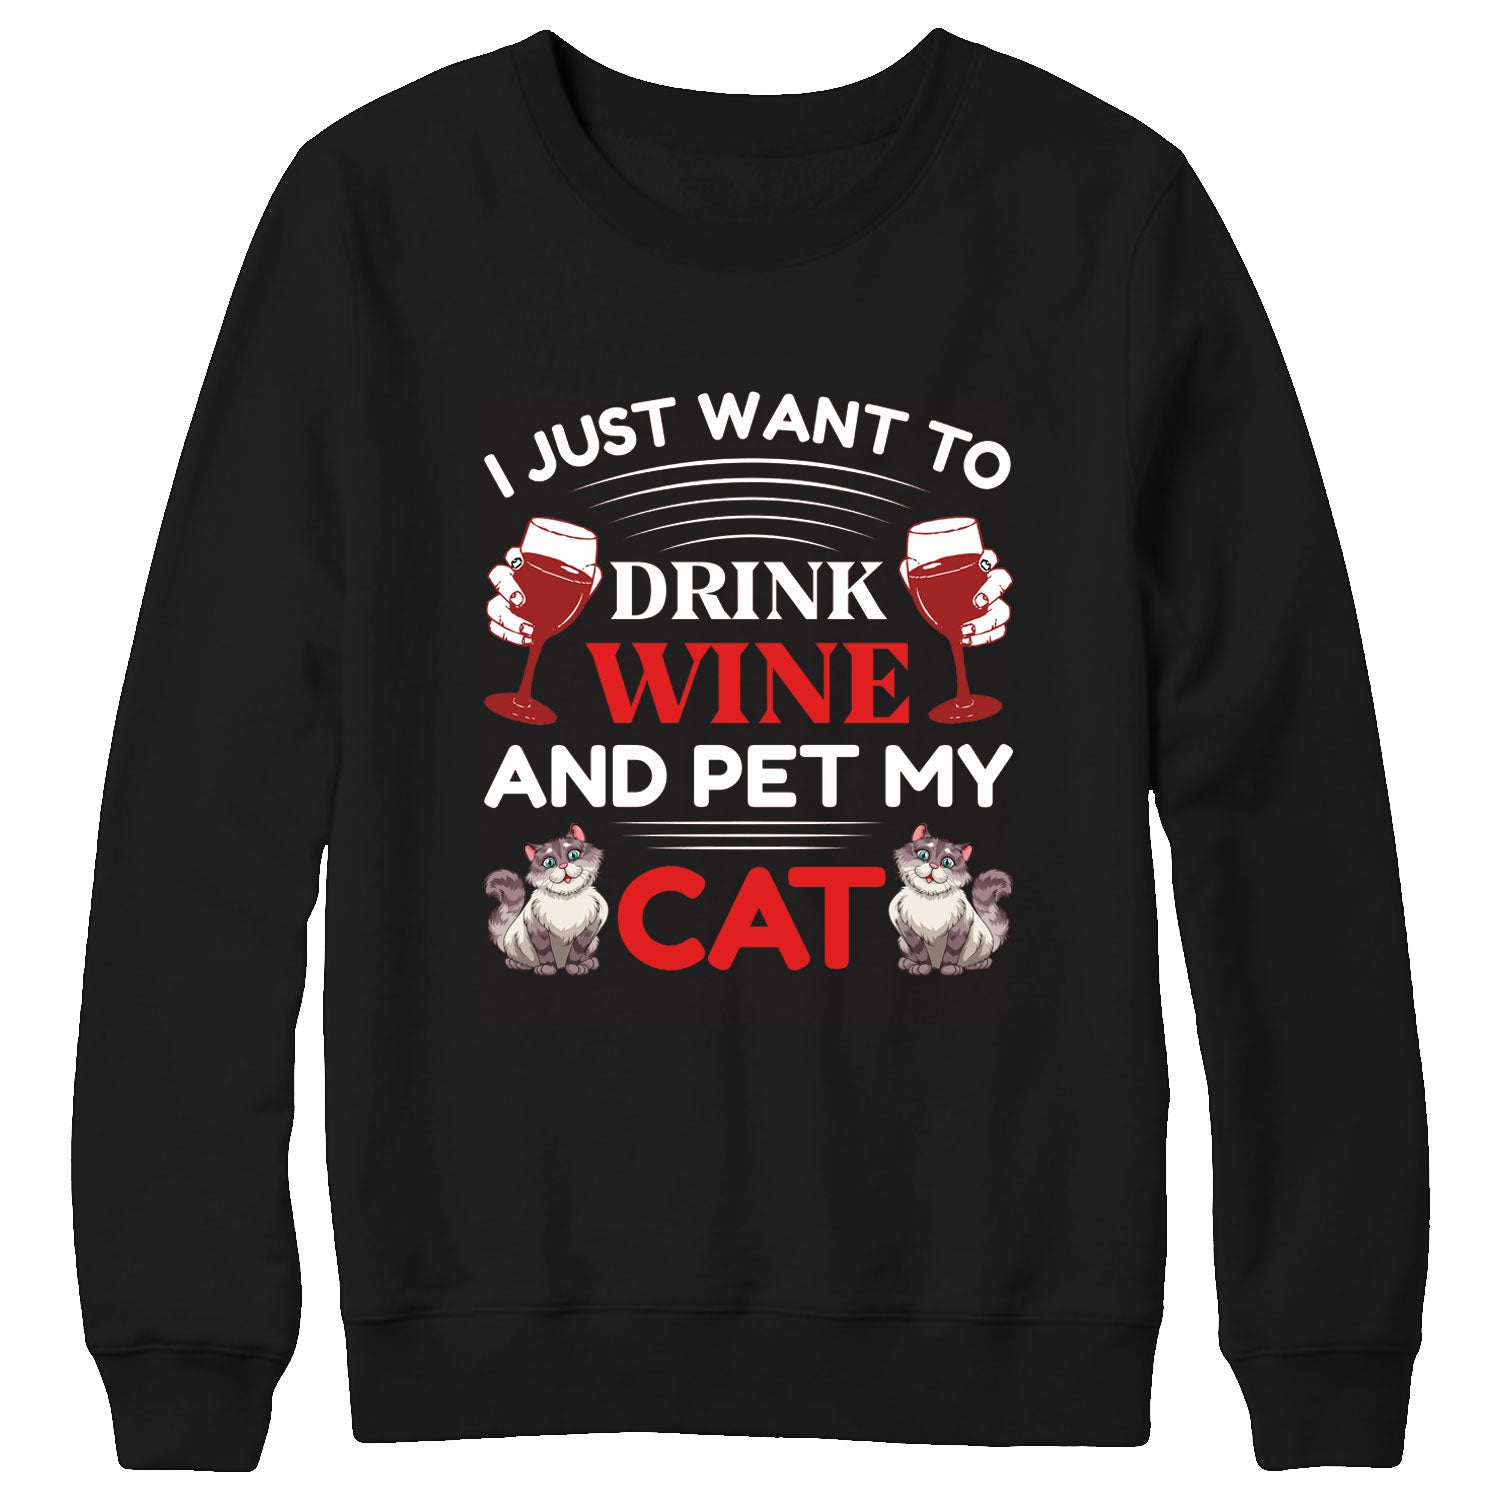 I just want to drink wine and pet cat